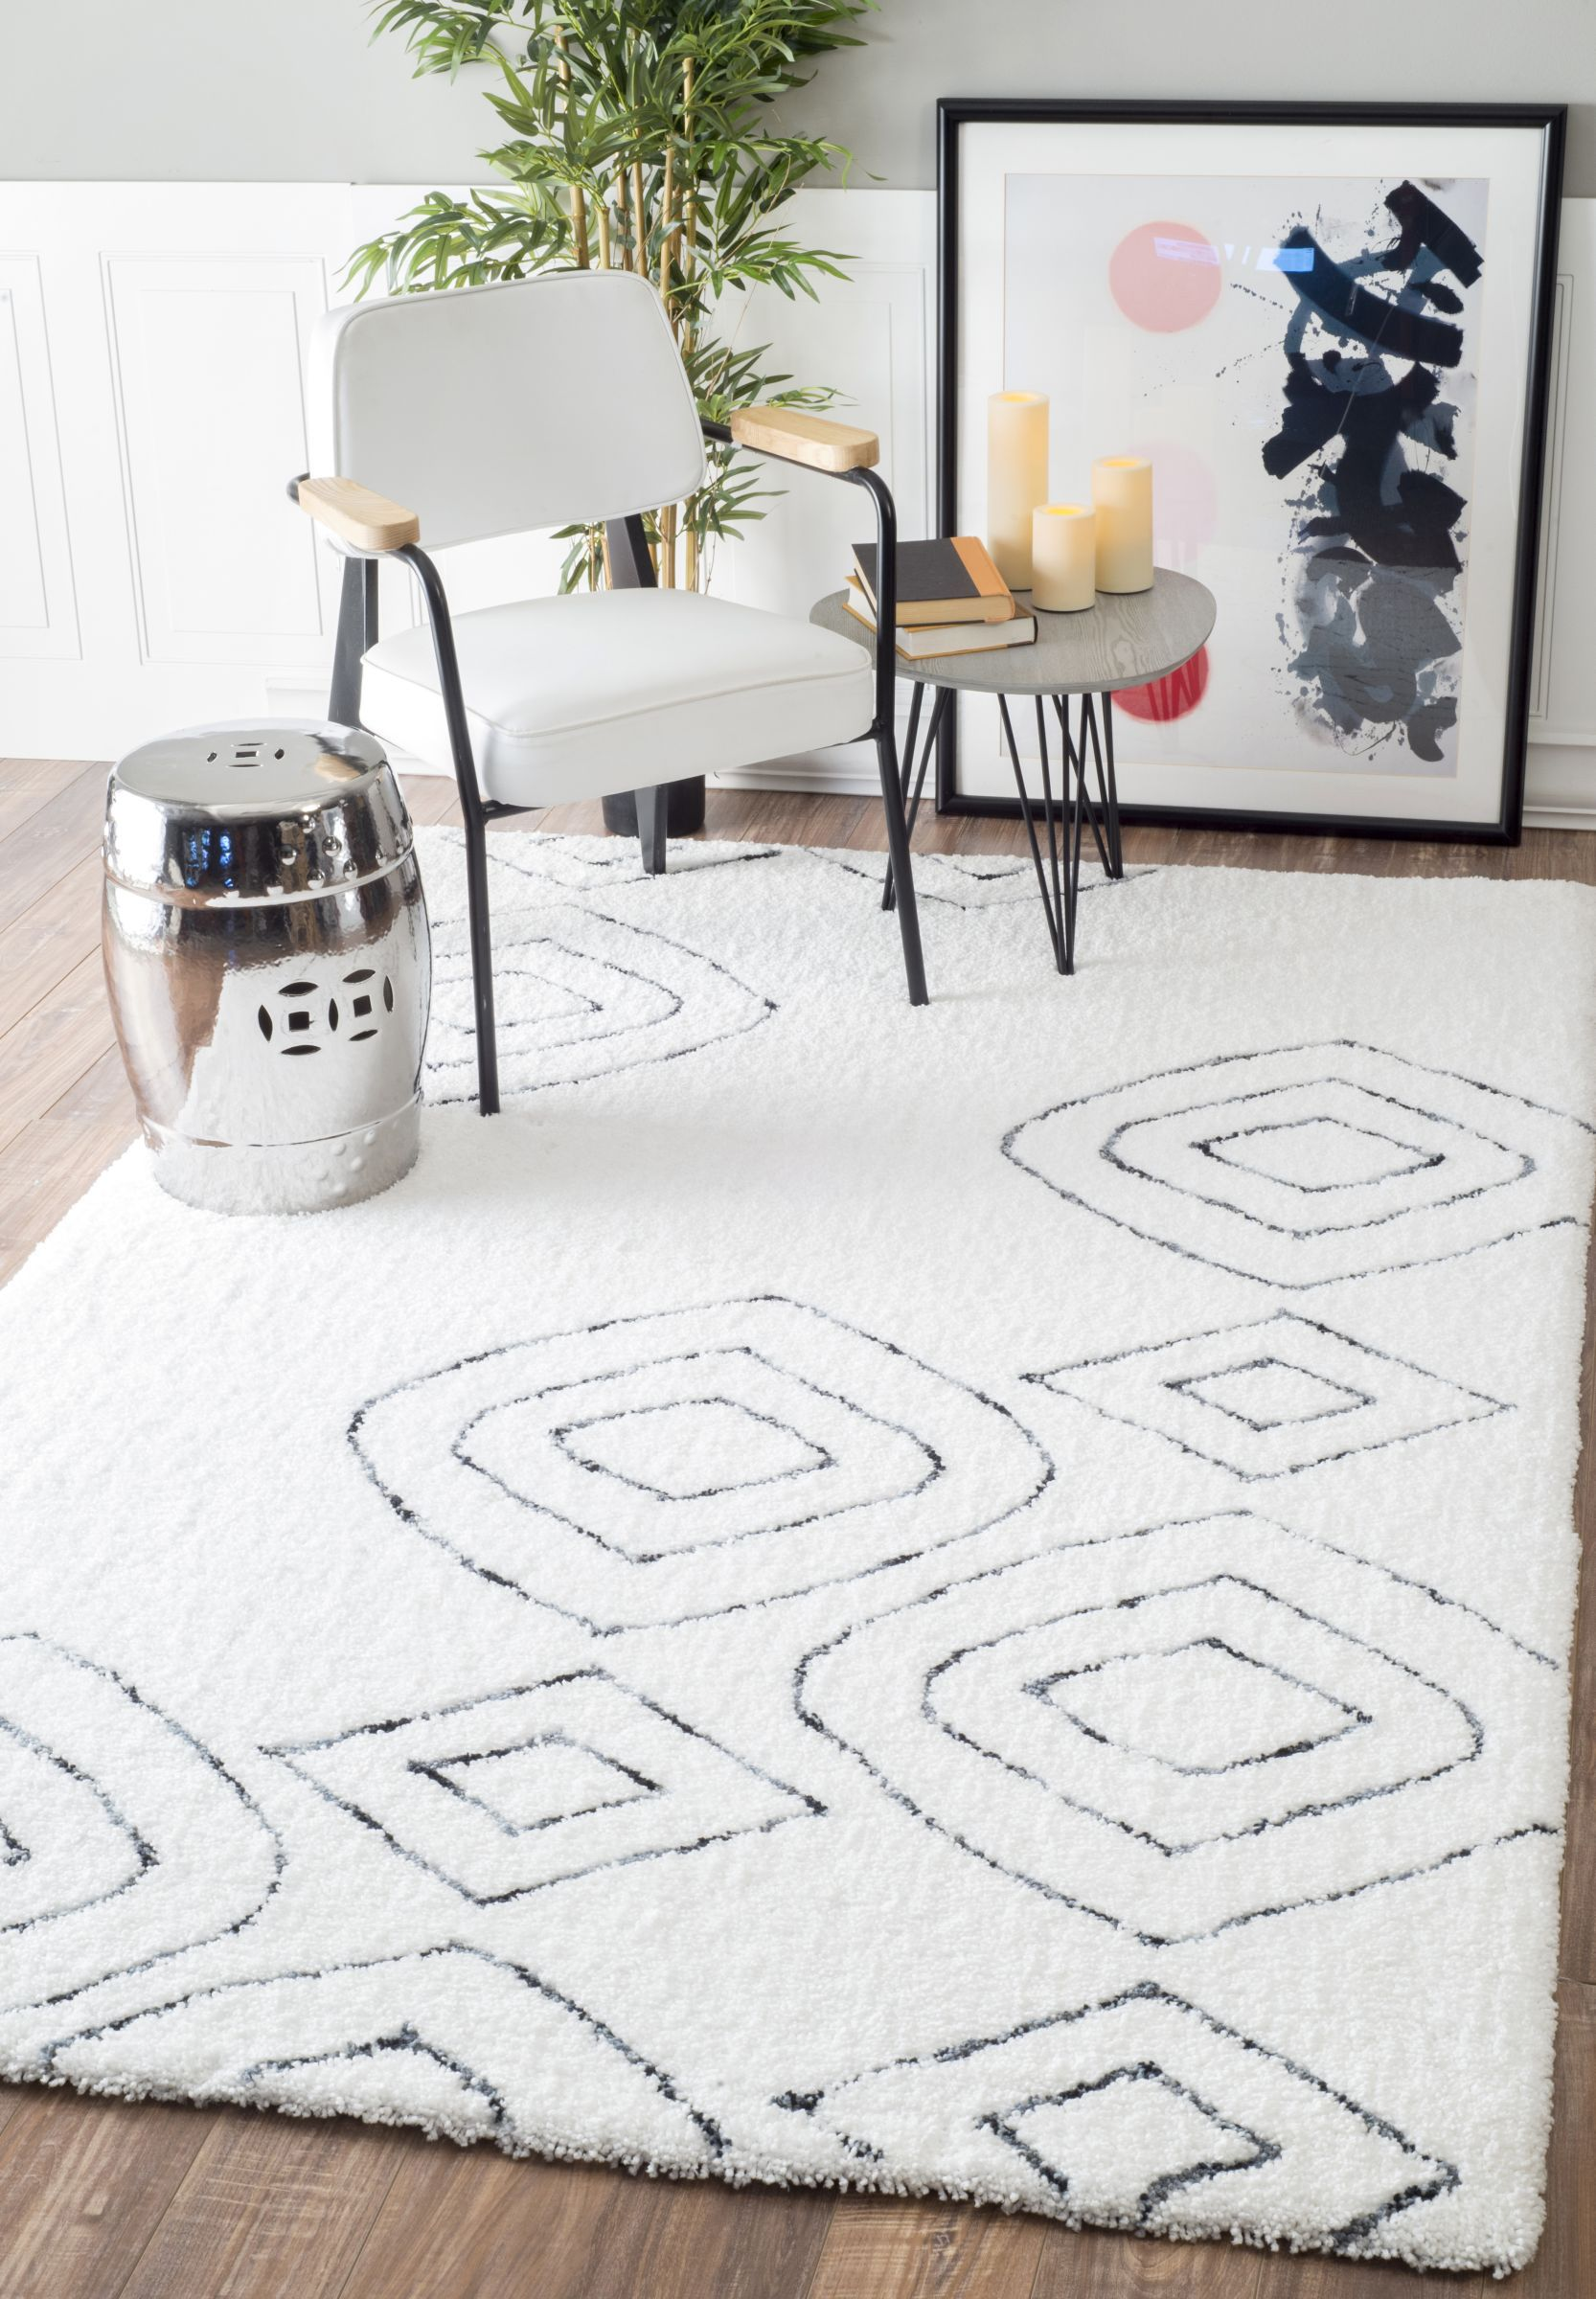 Rugs Usa  Area Rugs In Many Styles Including Contemporary,